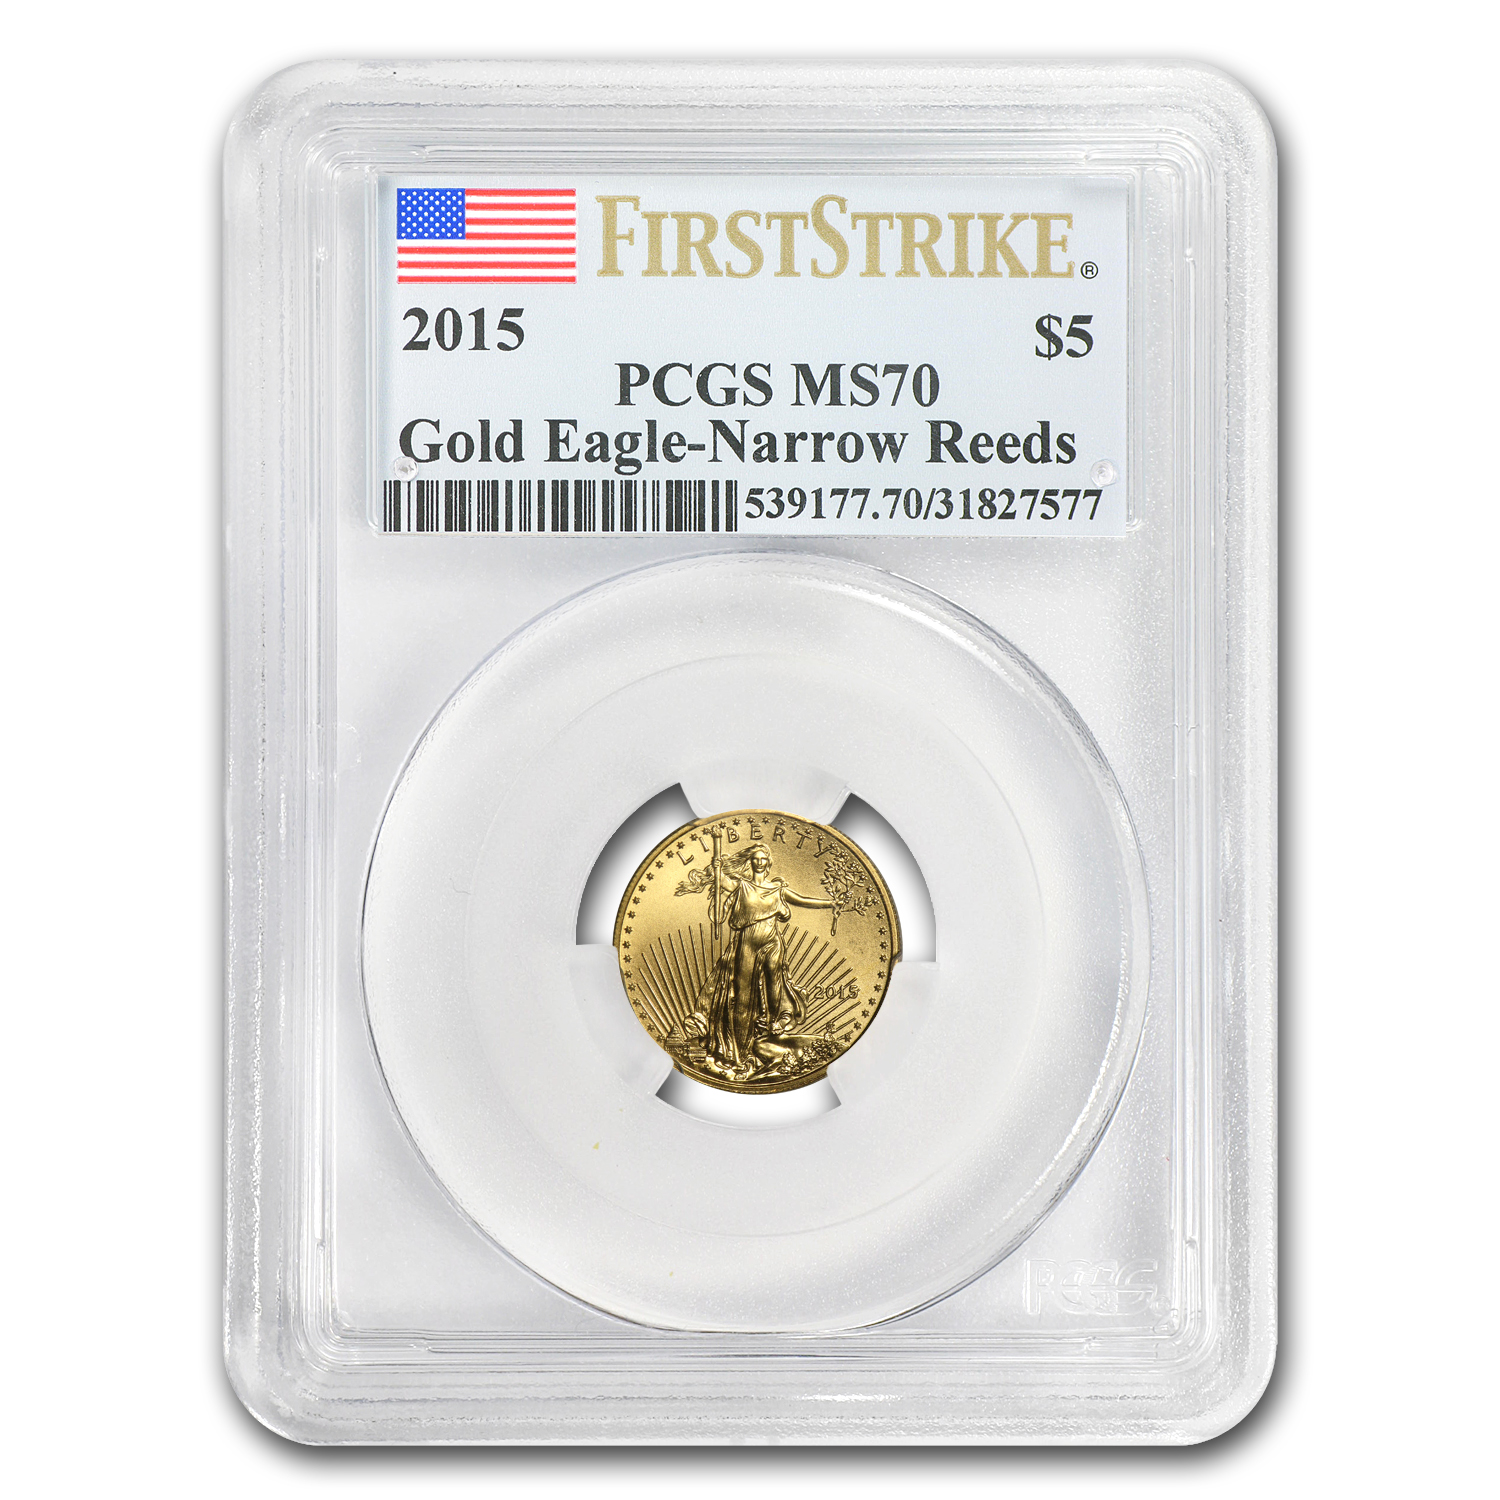 2015 1/10 oz Gold American Eagle MS-70 PCGS (FS, Narrow Reeds)